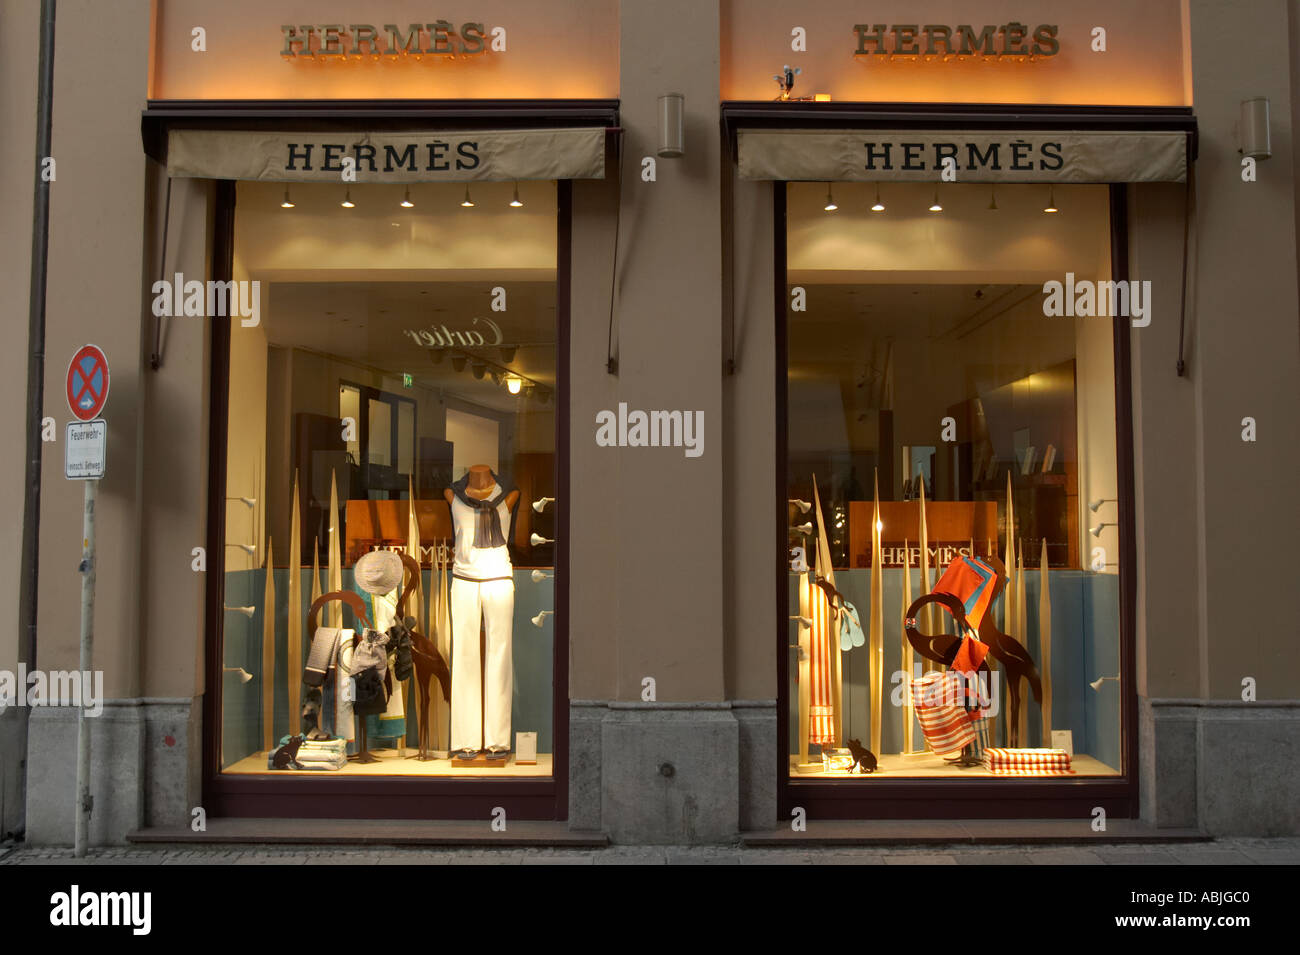 Windows Of A Hermes Store On Maximilianstrasse In Munich